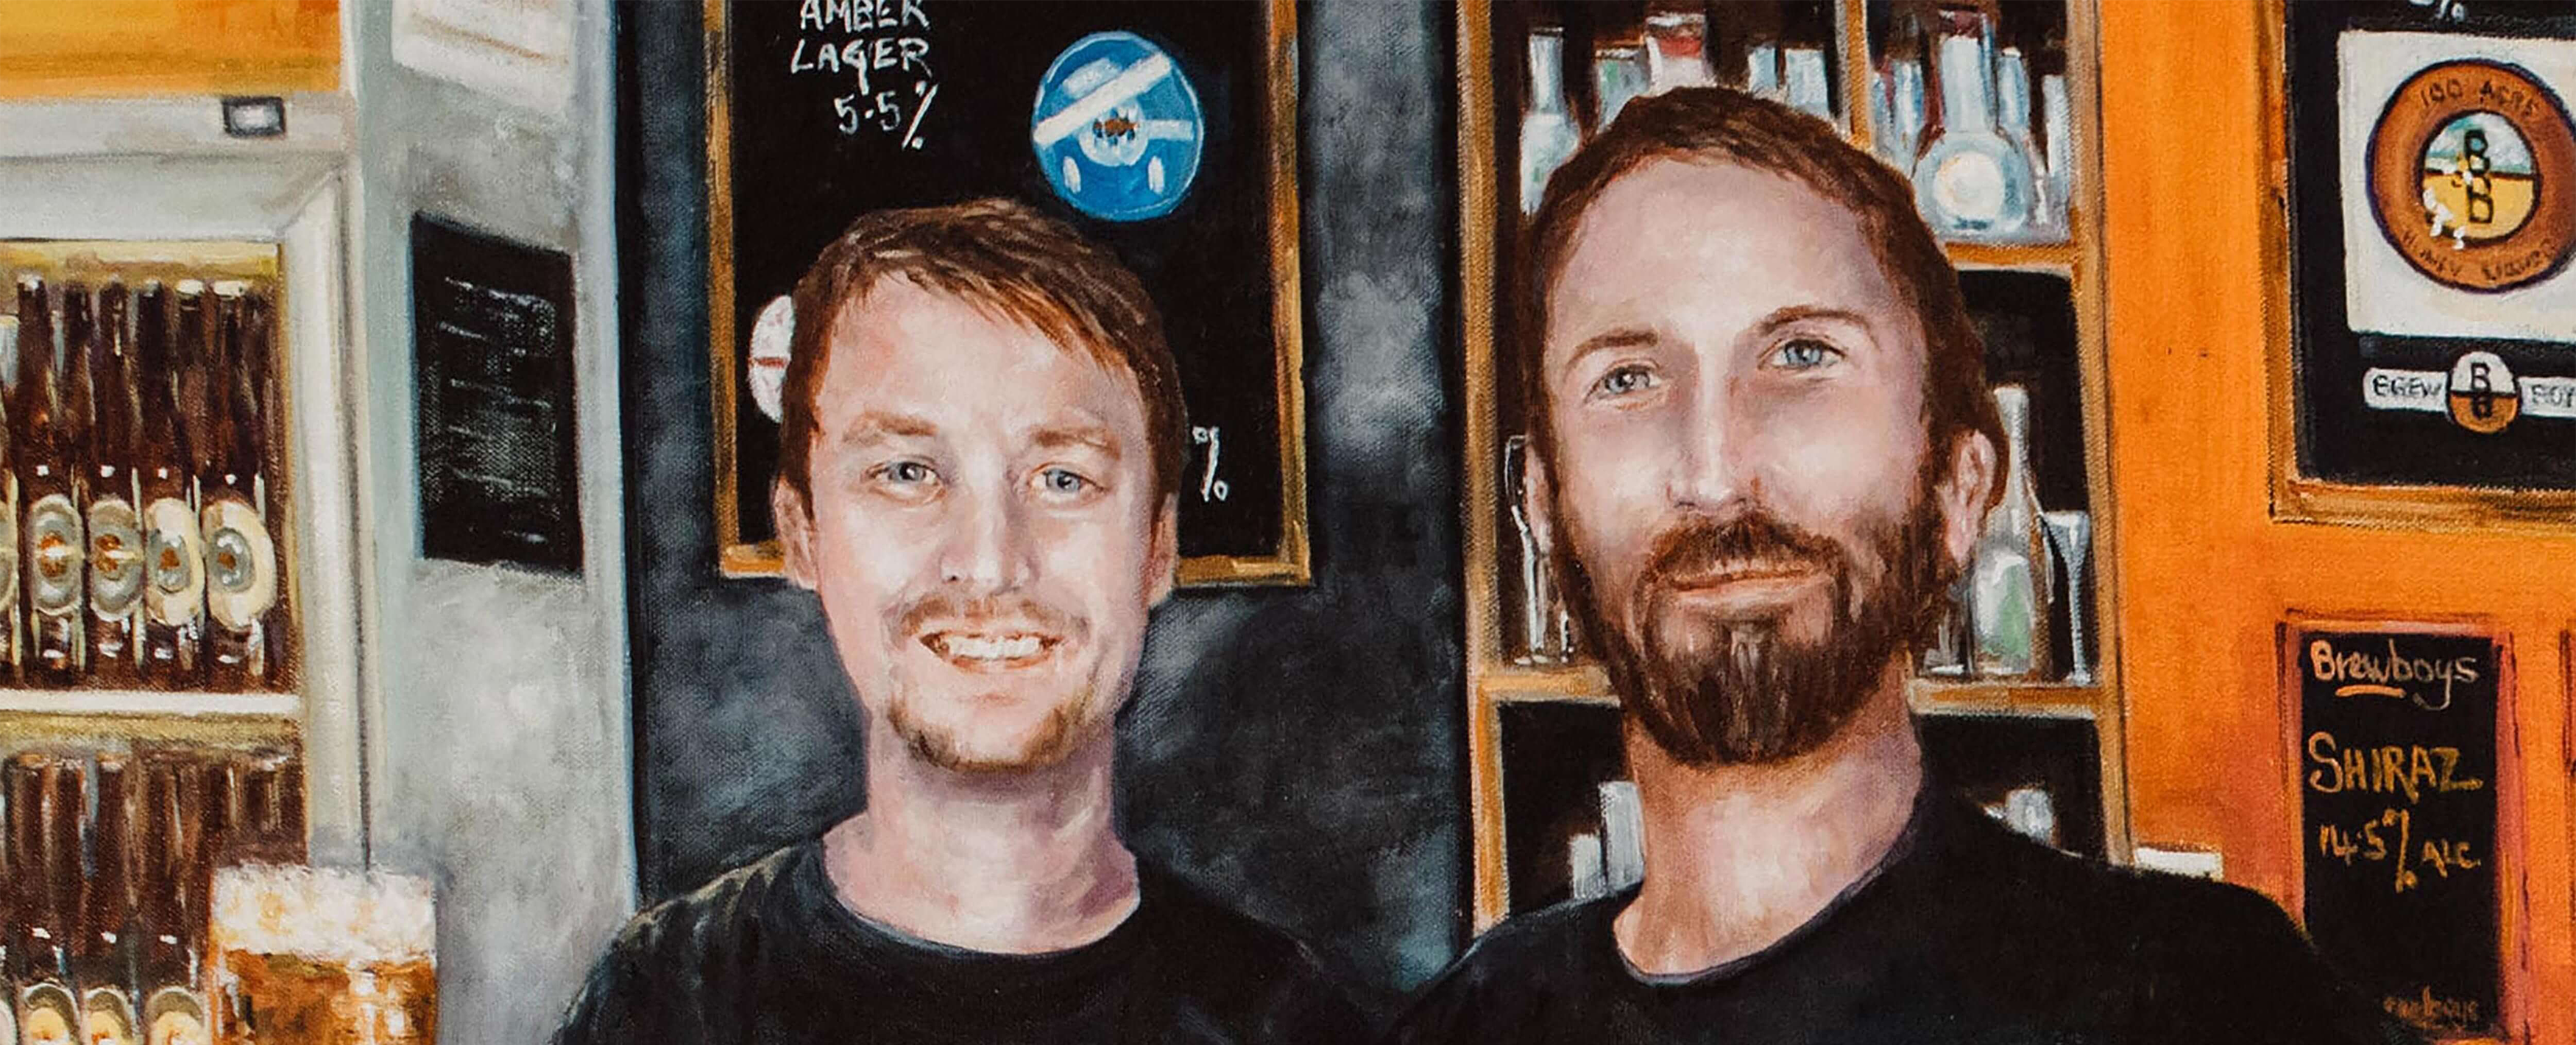 Painting of the Brewboys, Owen and Dan